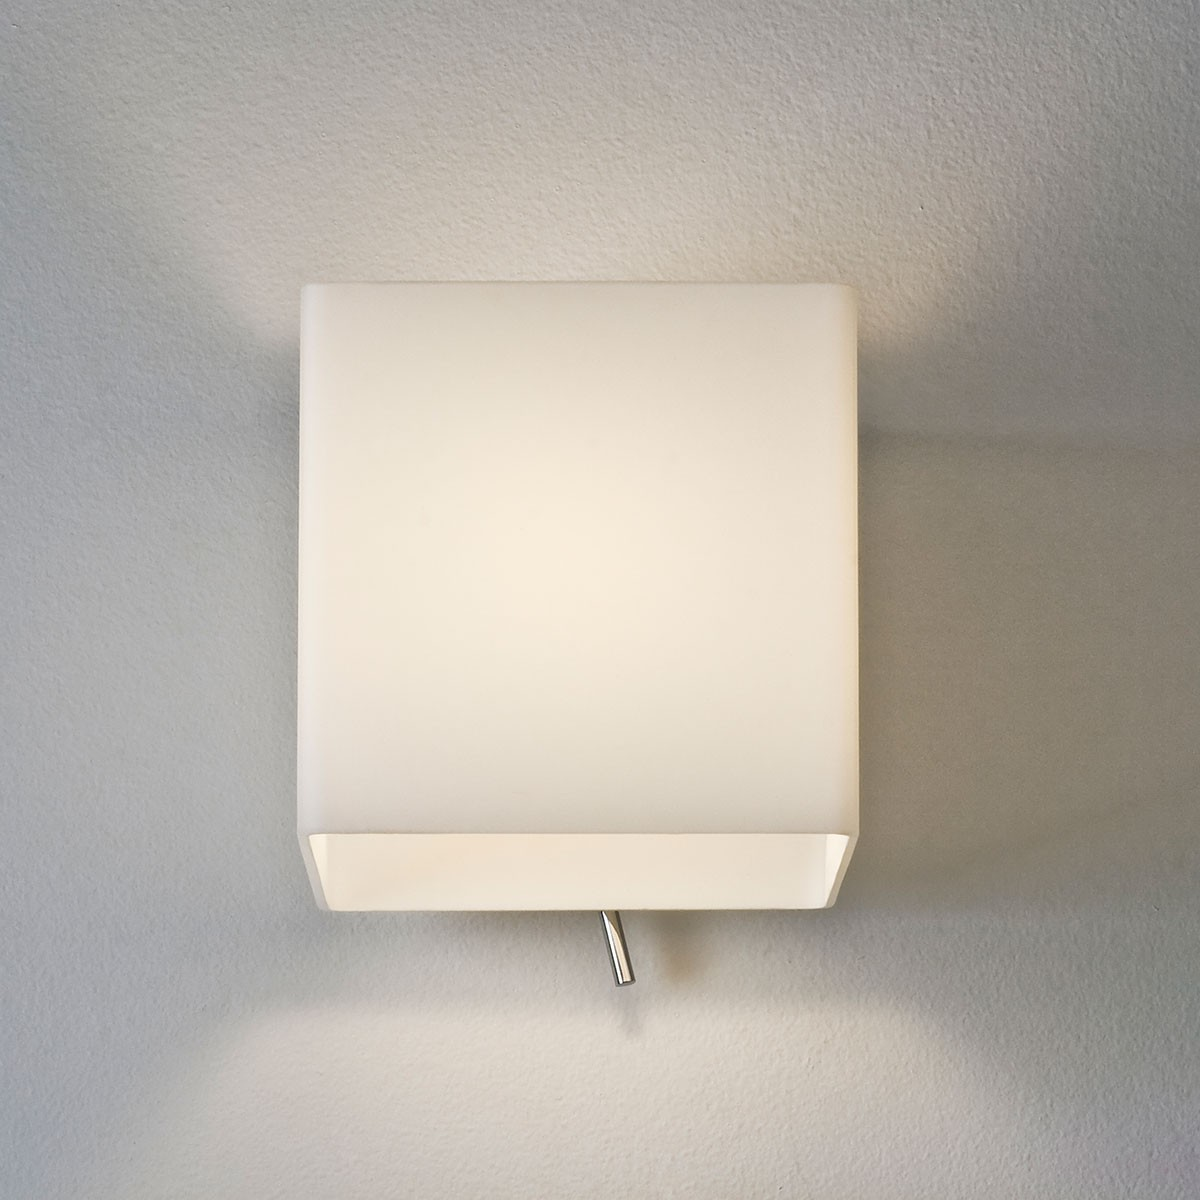 Switched Wall Light White : Astro Luga Switched Painted Silver and White Glass Wall Light at UK Electrical Supplies.